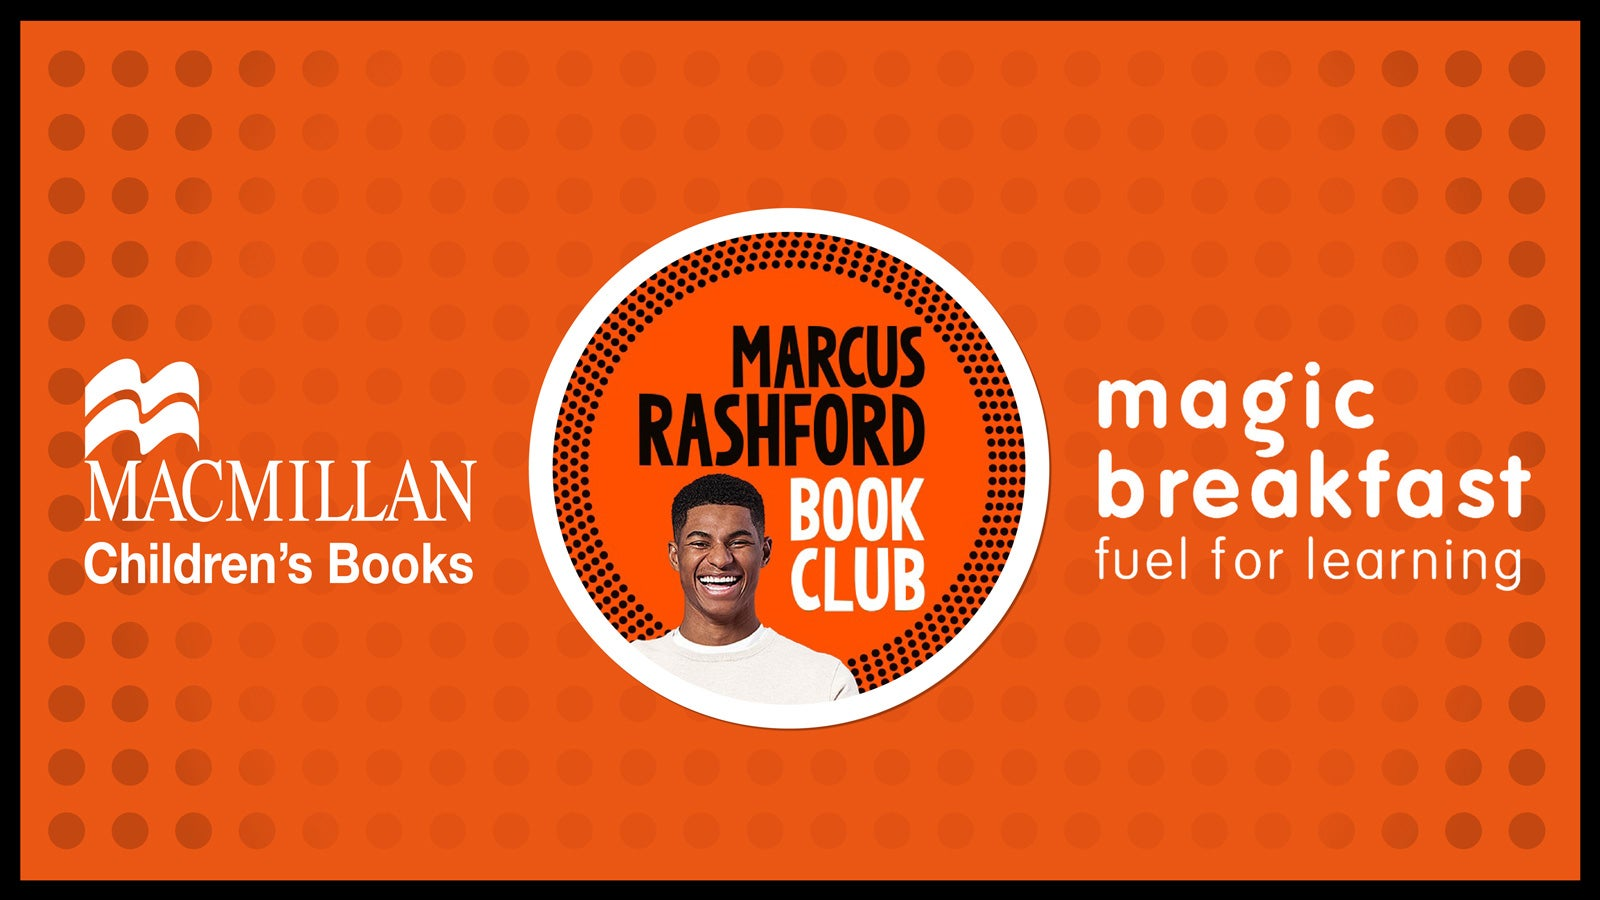 the marcus rashford book club logo - which shows Marcus smiling, with the Macmillan Children's Books logo to its left, and the Magic Breakfast fuel for learning logo to its right